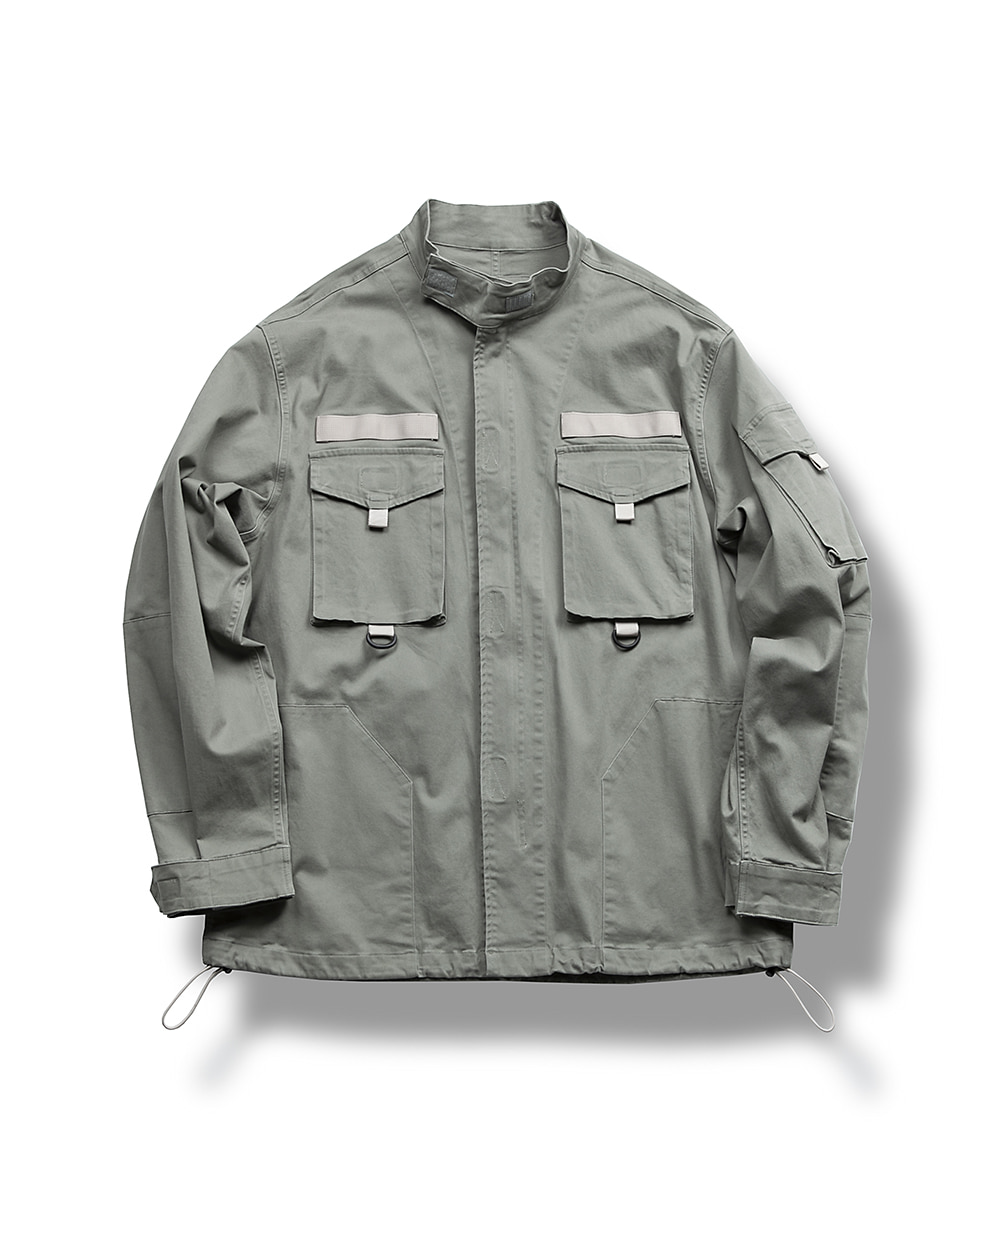 (VLADIMIR) VDMR FIELD JACKET LIGHT GRAY